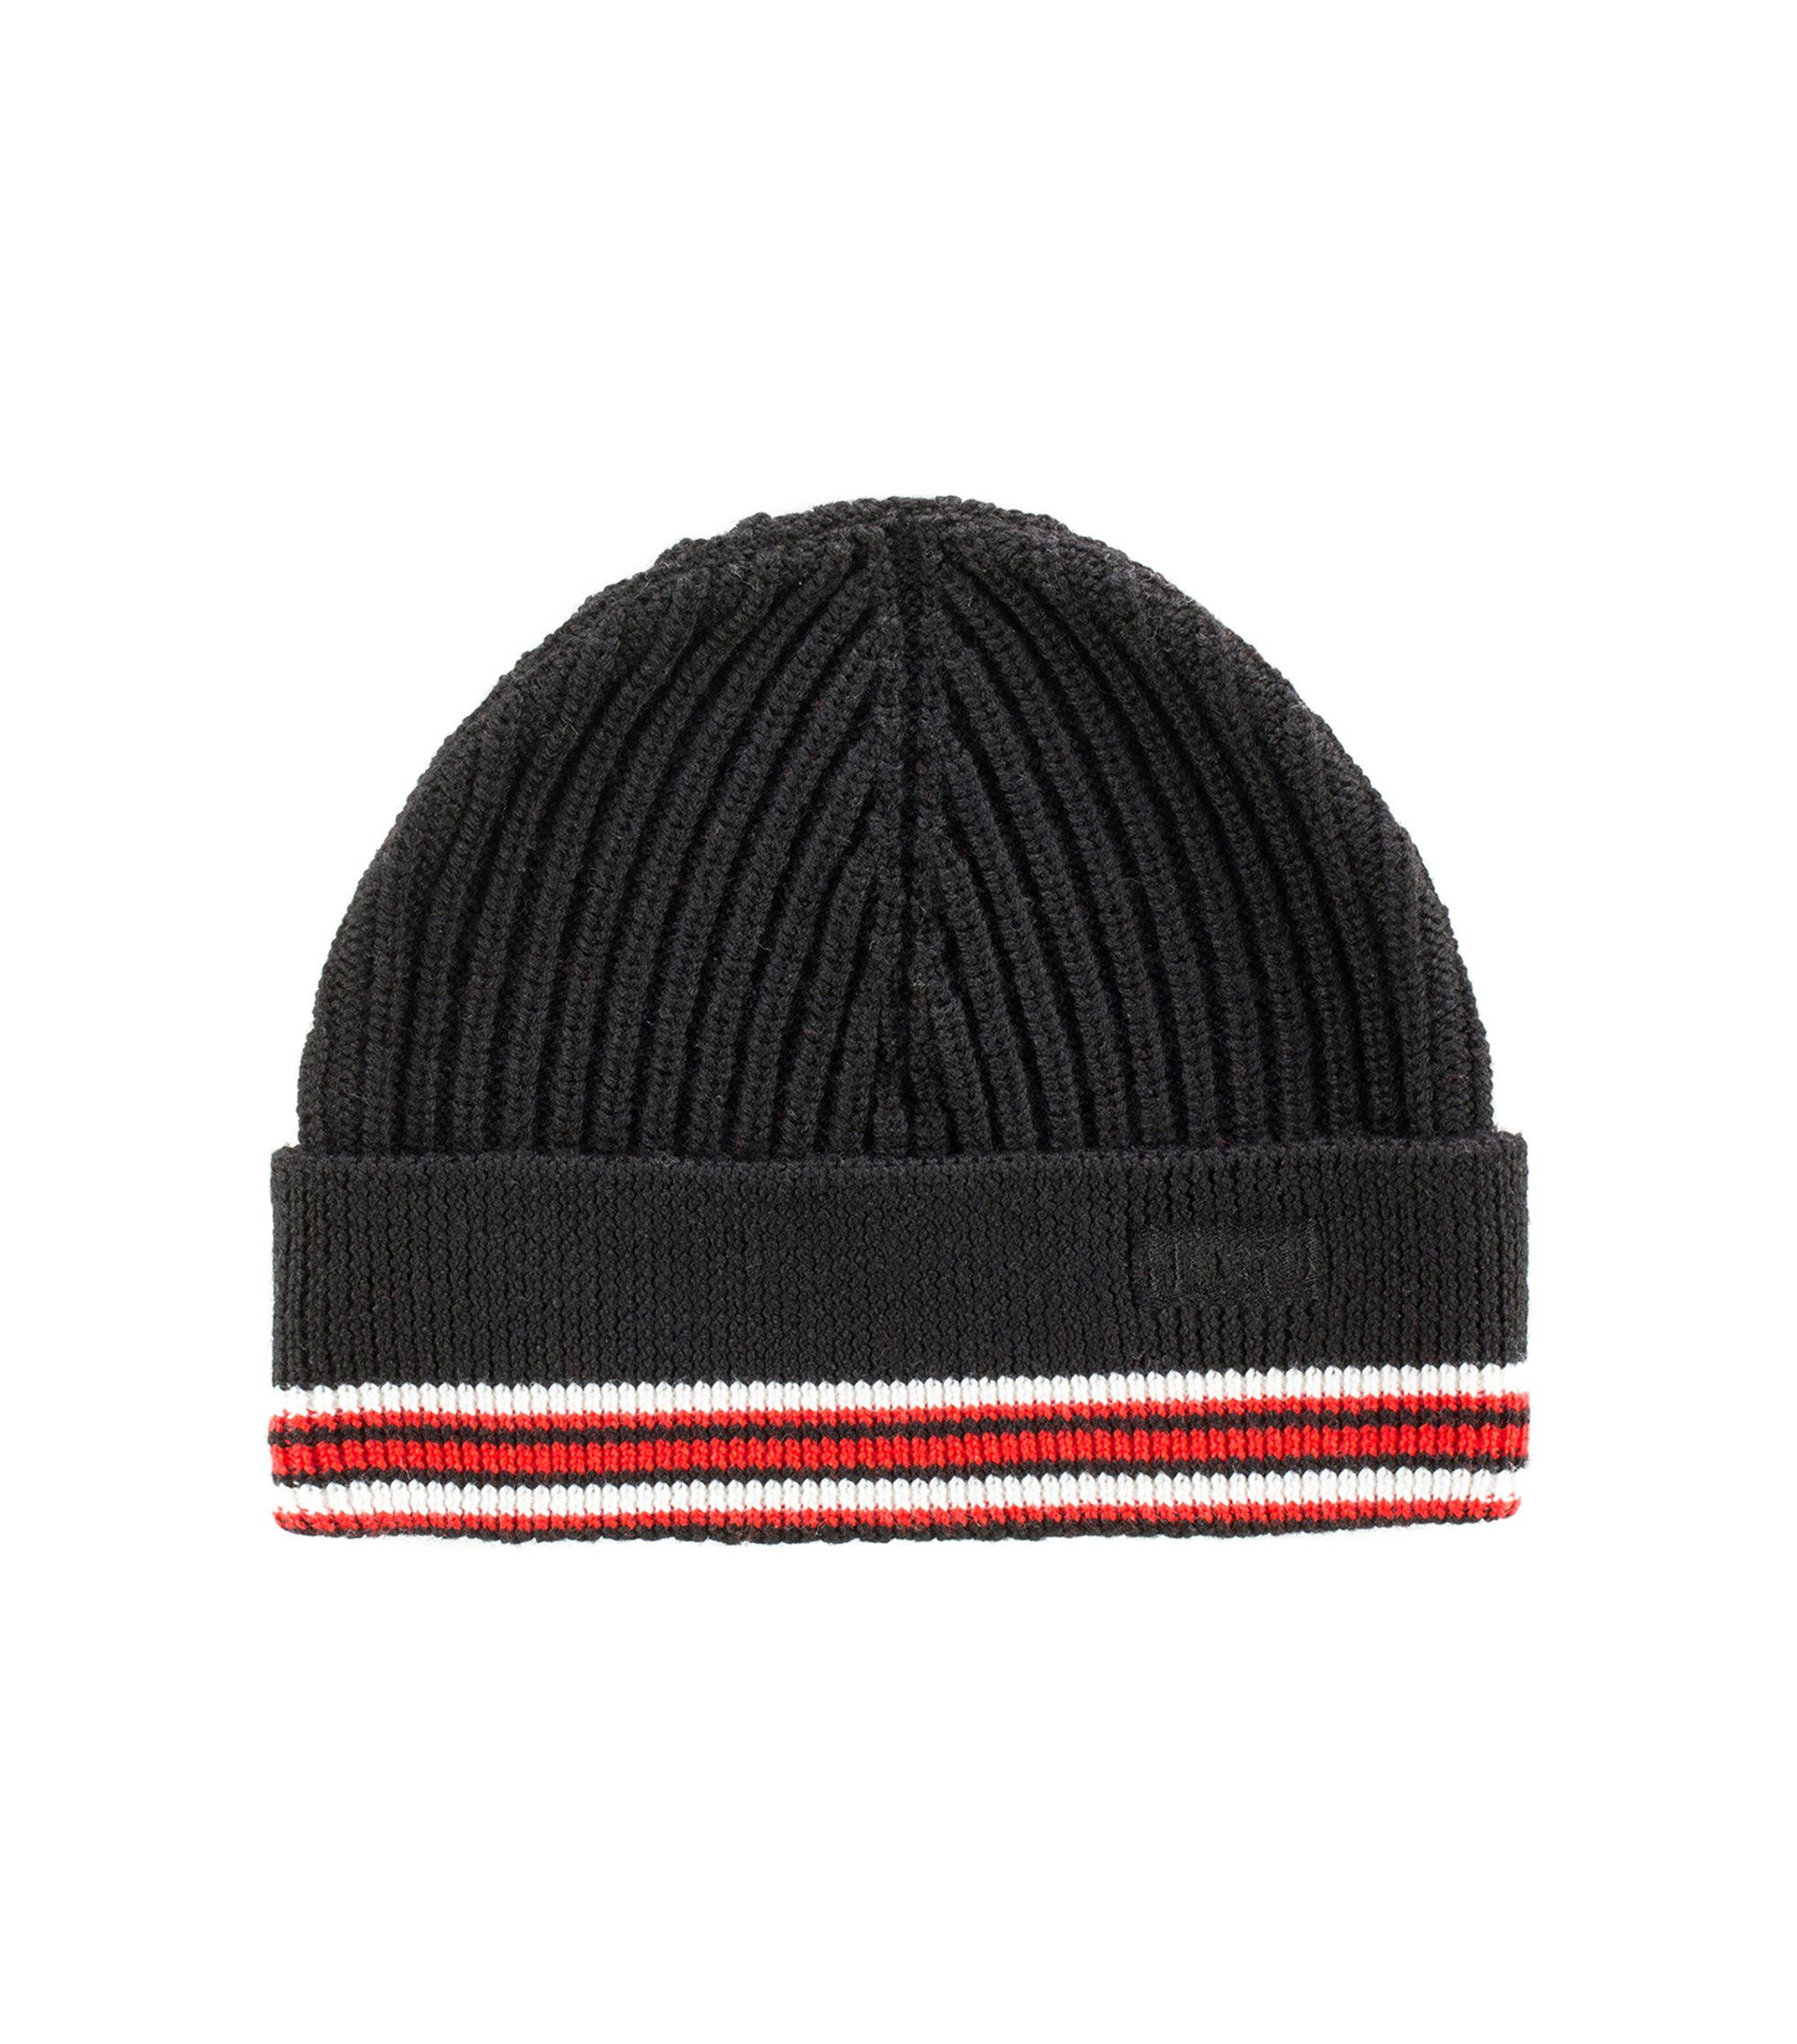 Ribbed merino-wool beanie hat with logo embroidery, Black